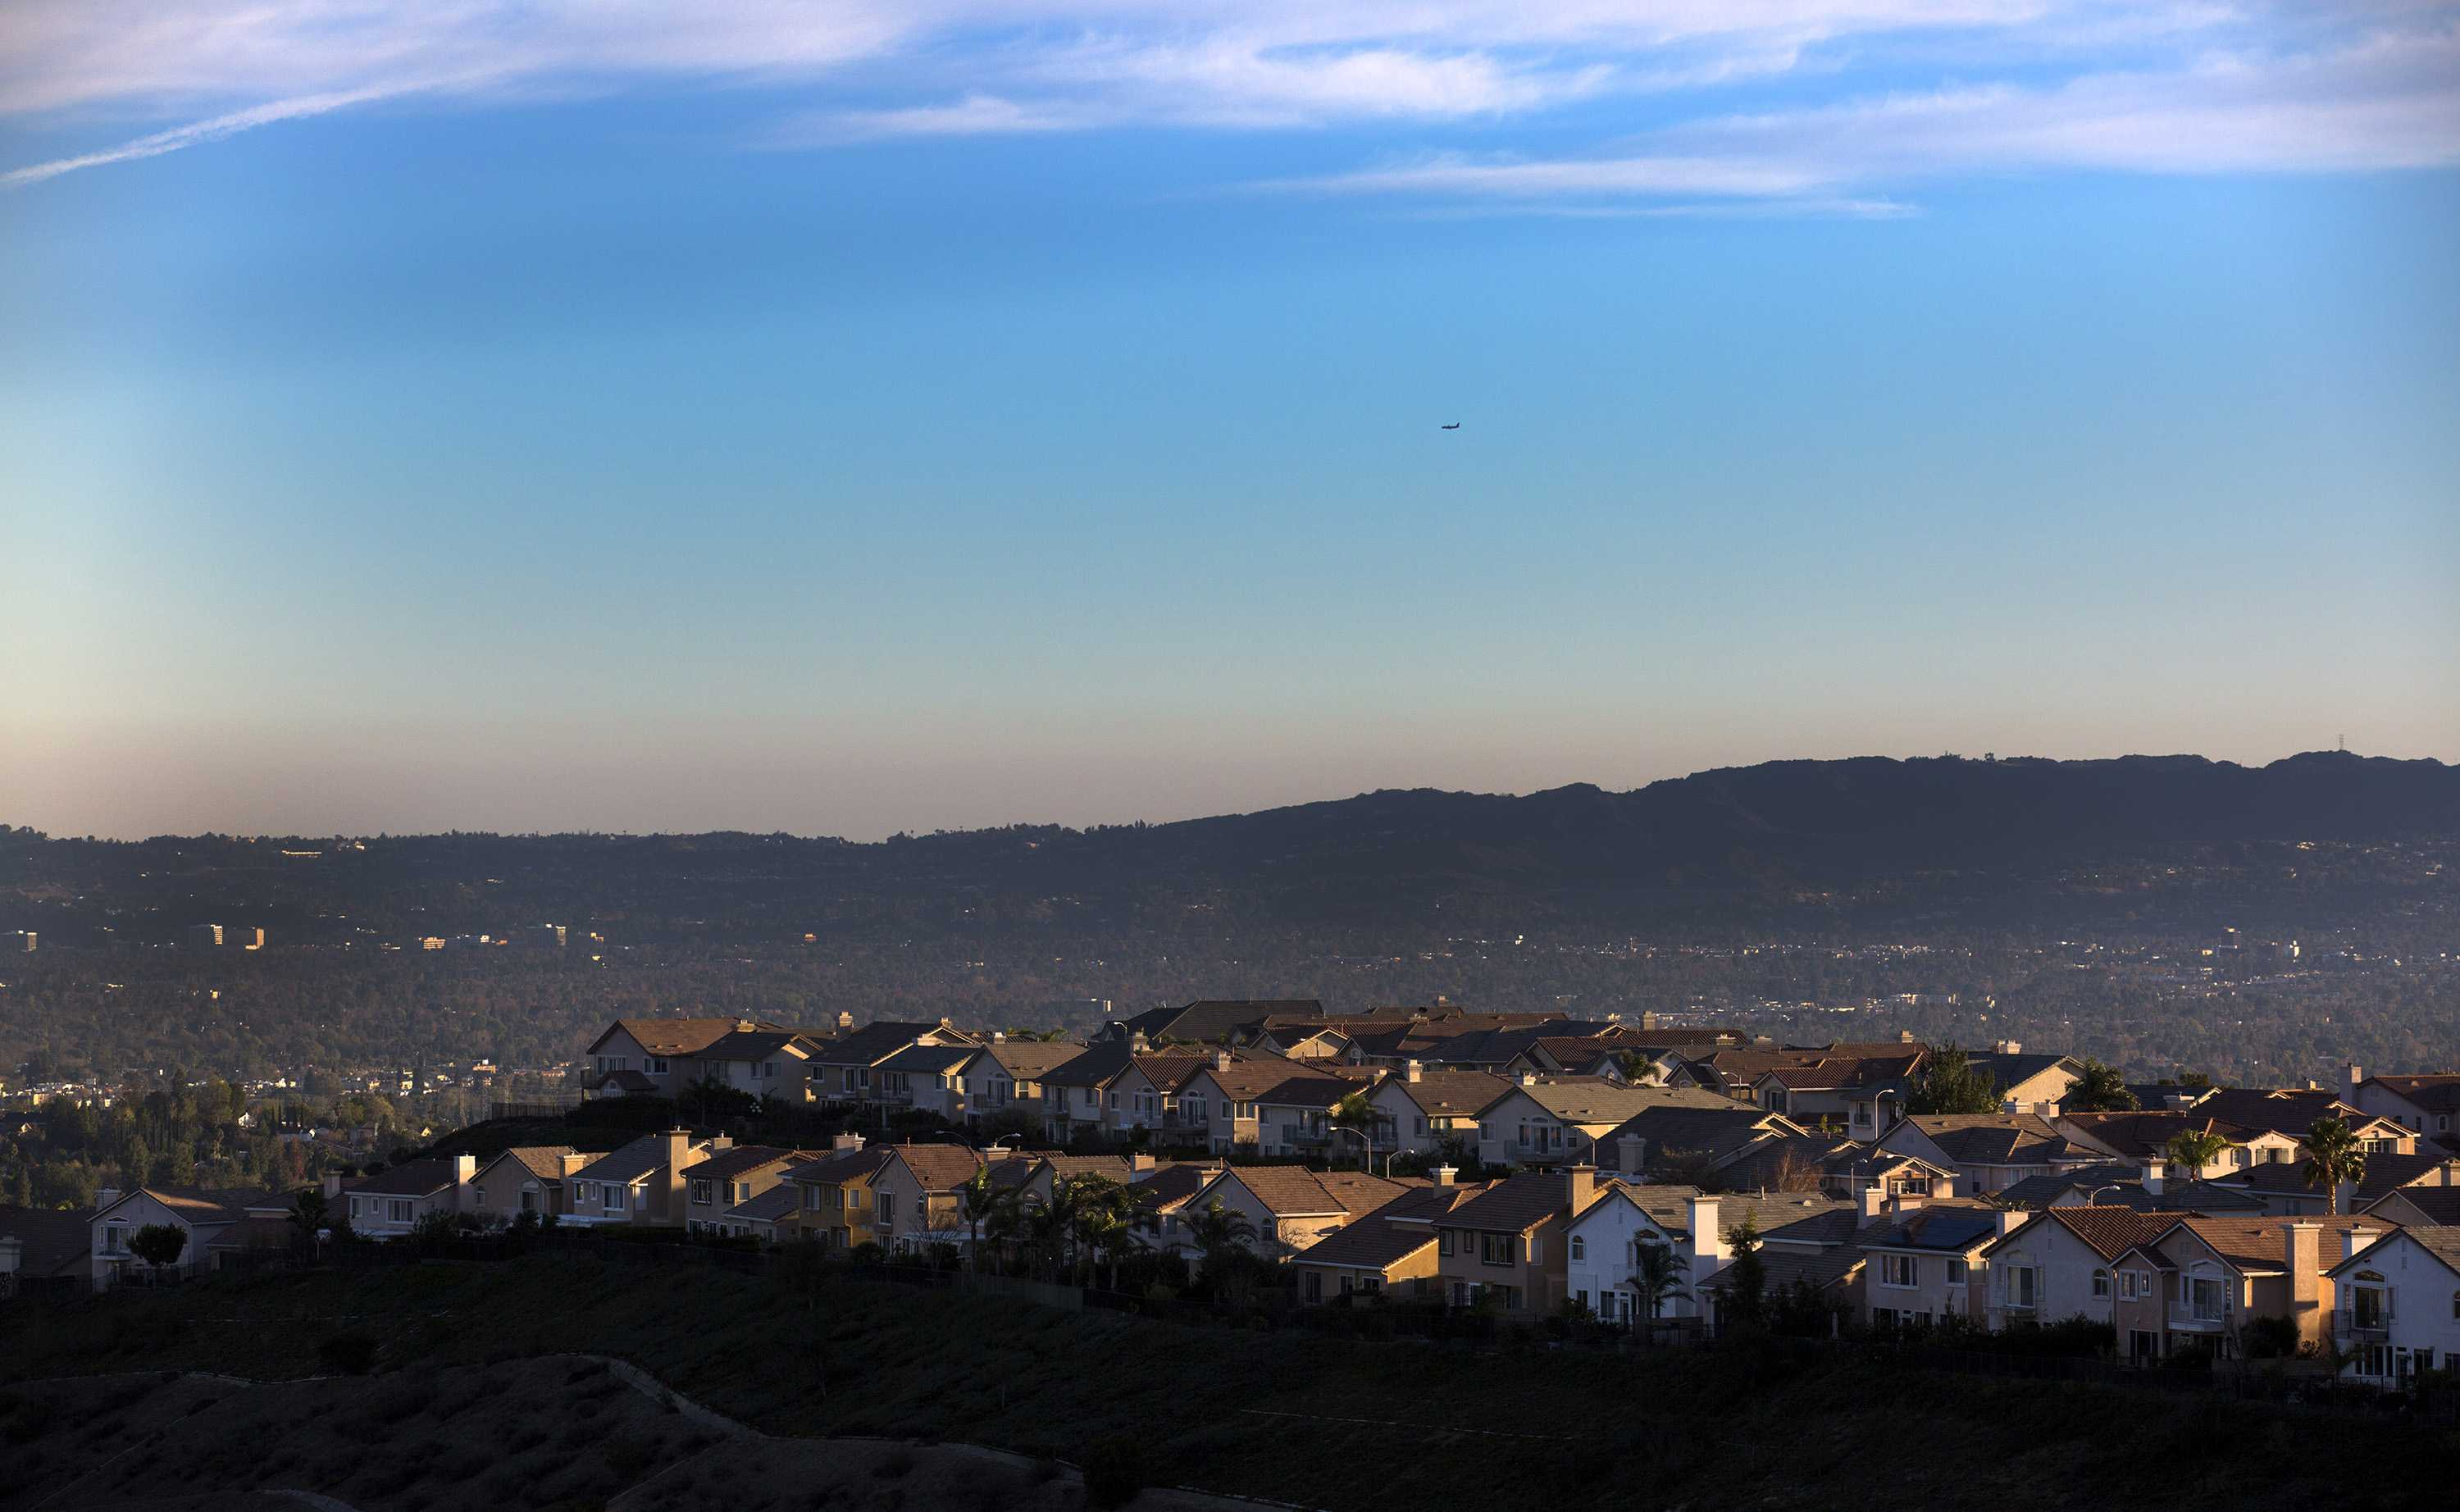 The late afternoon sun casts a warm glow on ridgeline homes overlooking the San Fernando Valley on Dec. 23, 2015 in Porter Ranch, Calif. (Brian van der Brug/Los Angeles Times/TNS)